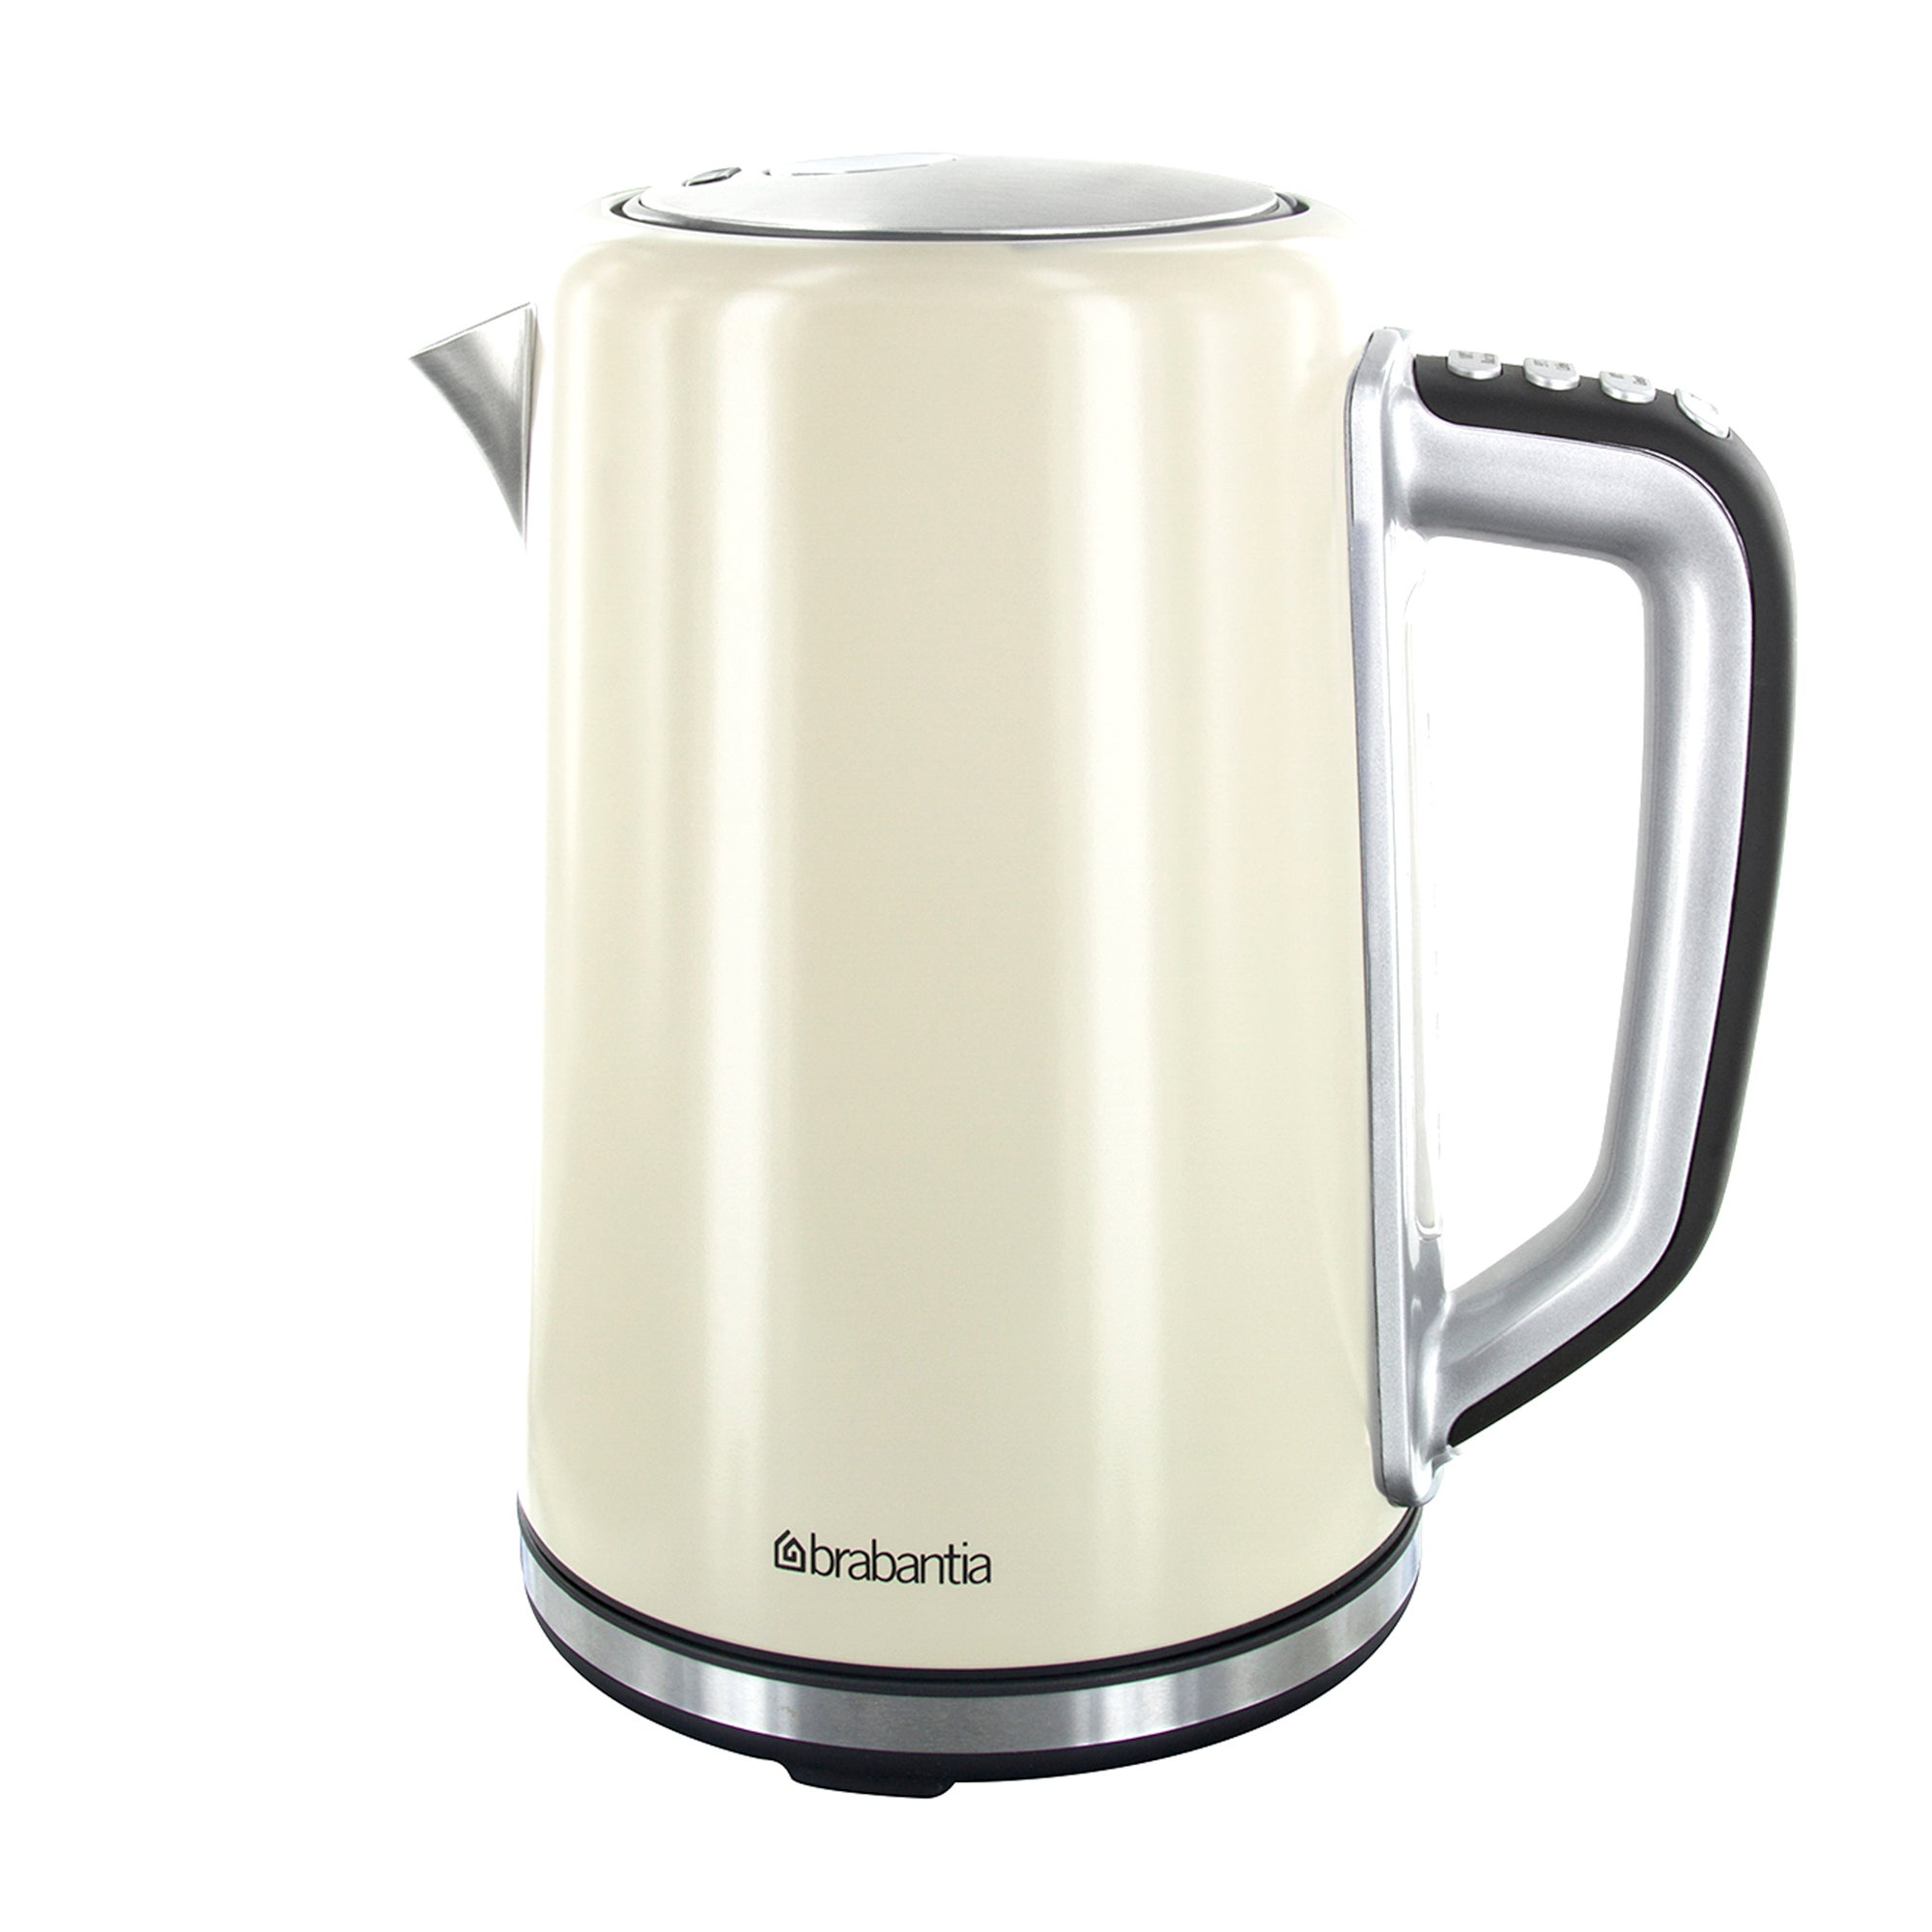 Brabantia Cream Stainless Steel Soft Grip Digital Kettle